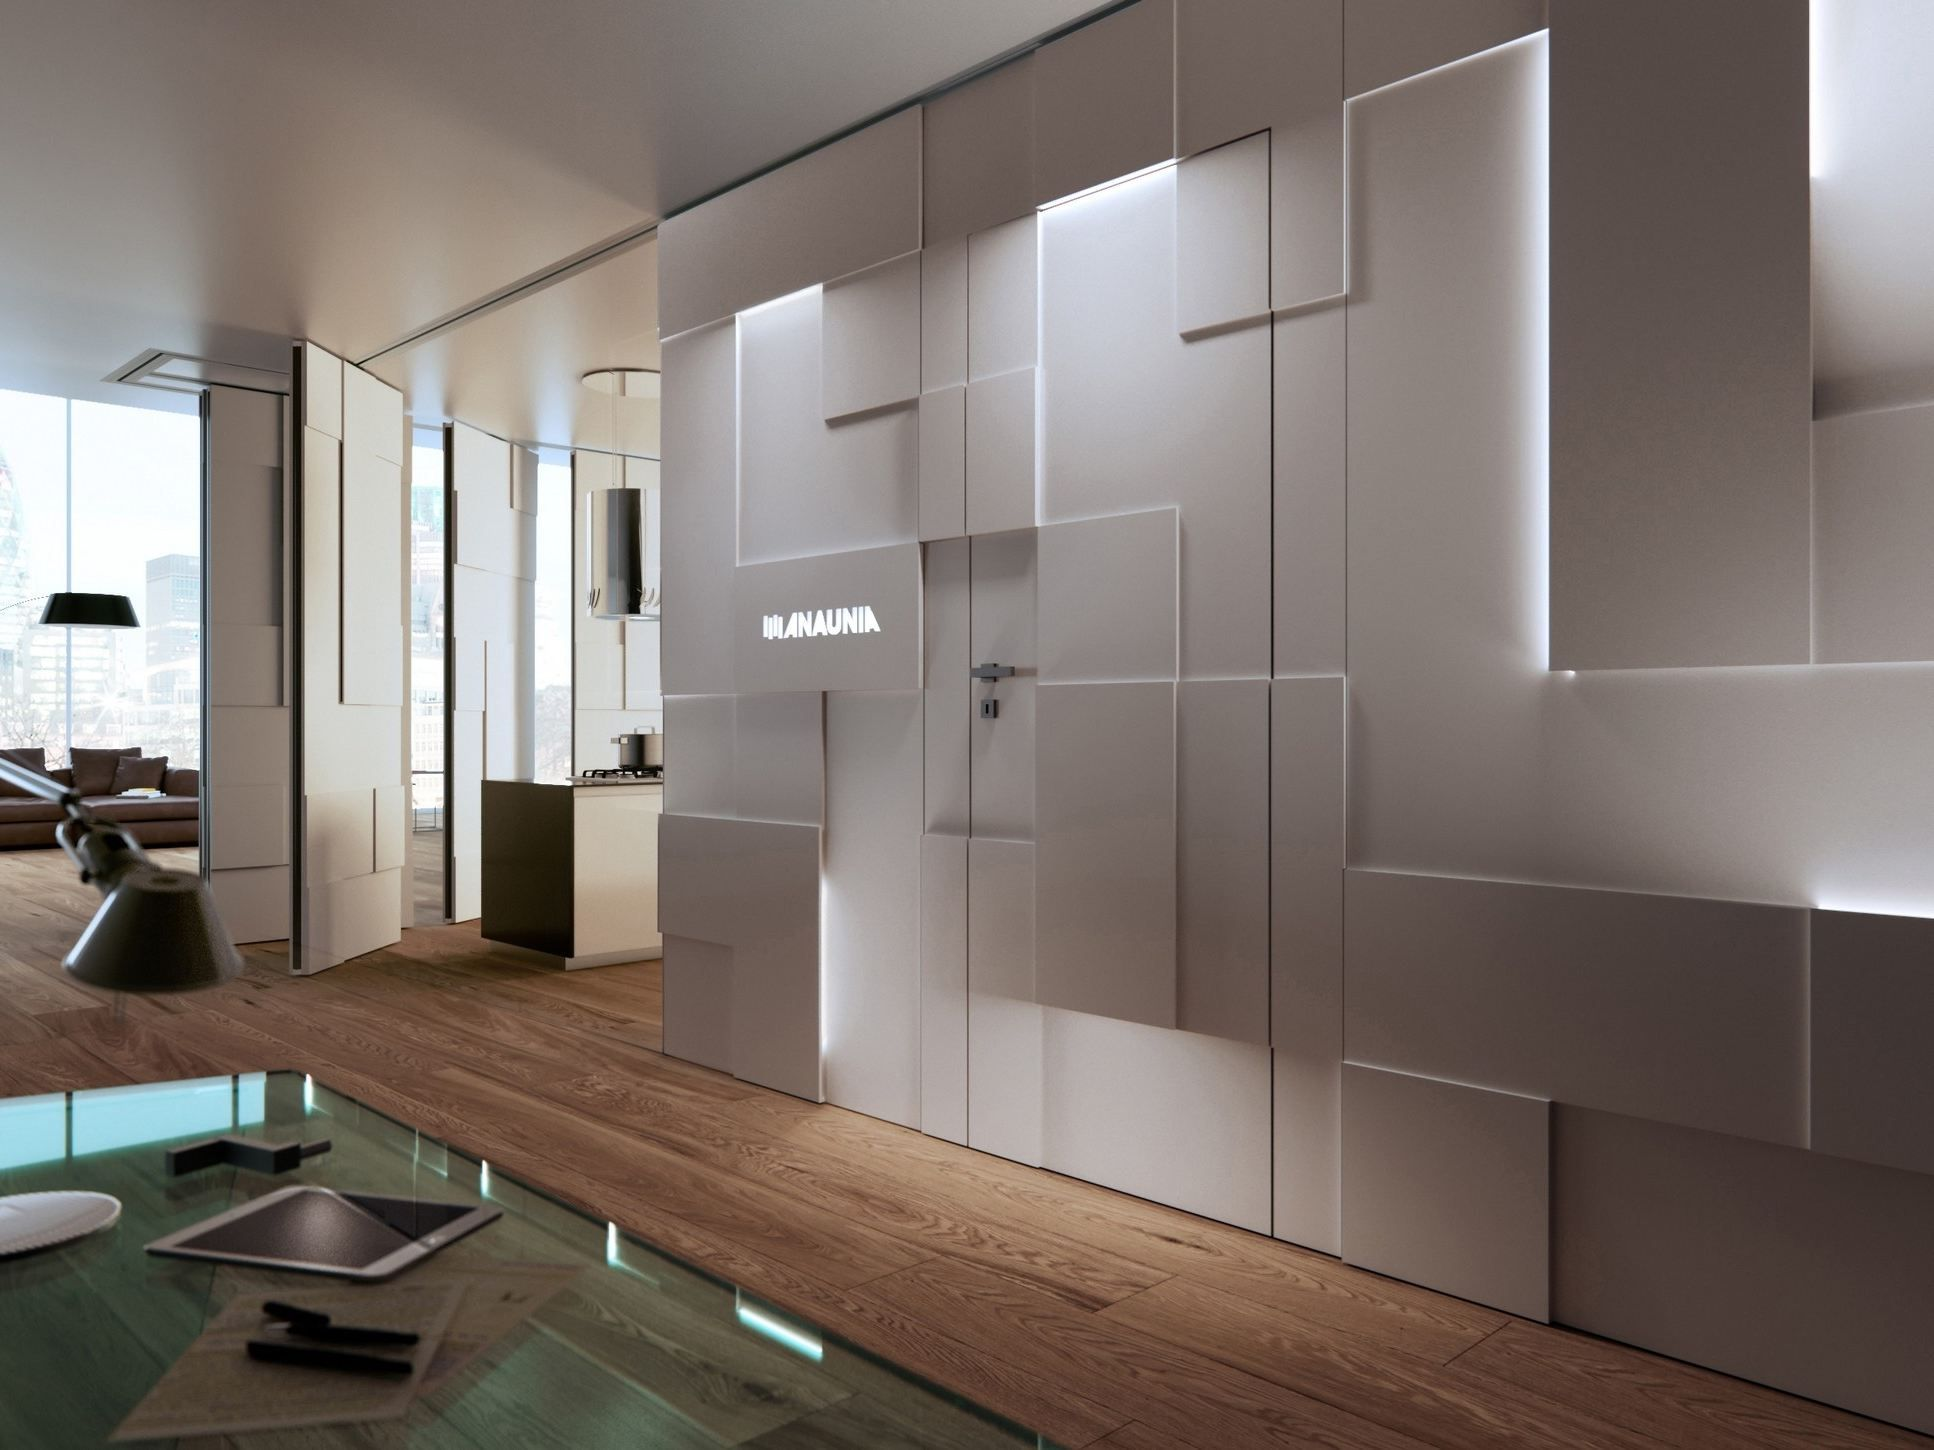 Movable Design Partitions Shine Walls Pmd Design By Anaunia Design